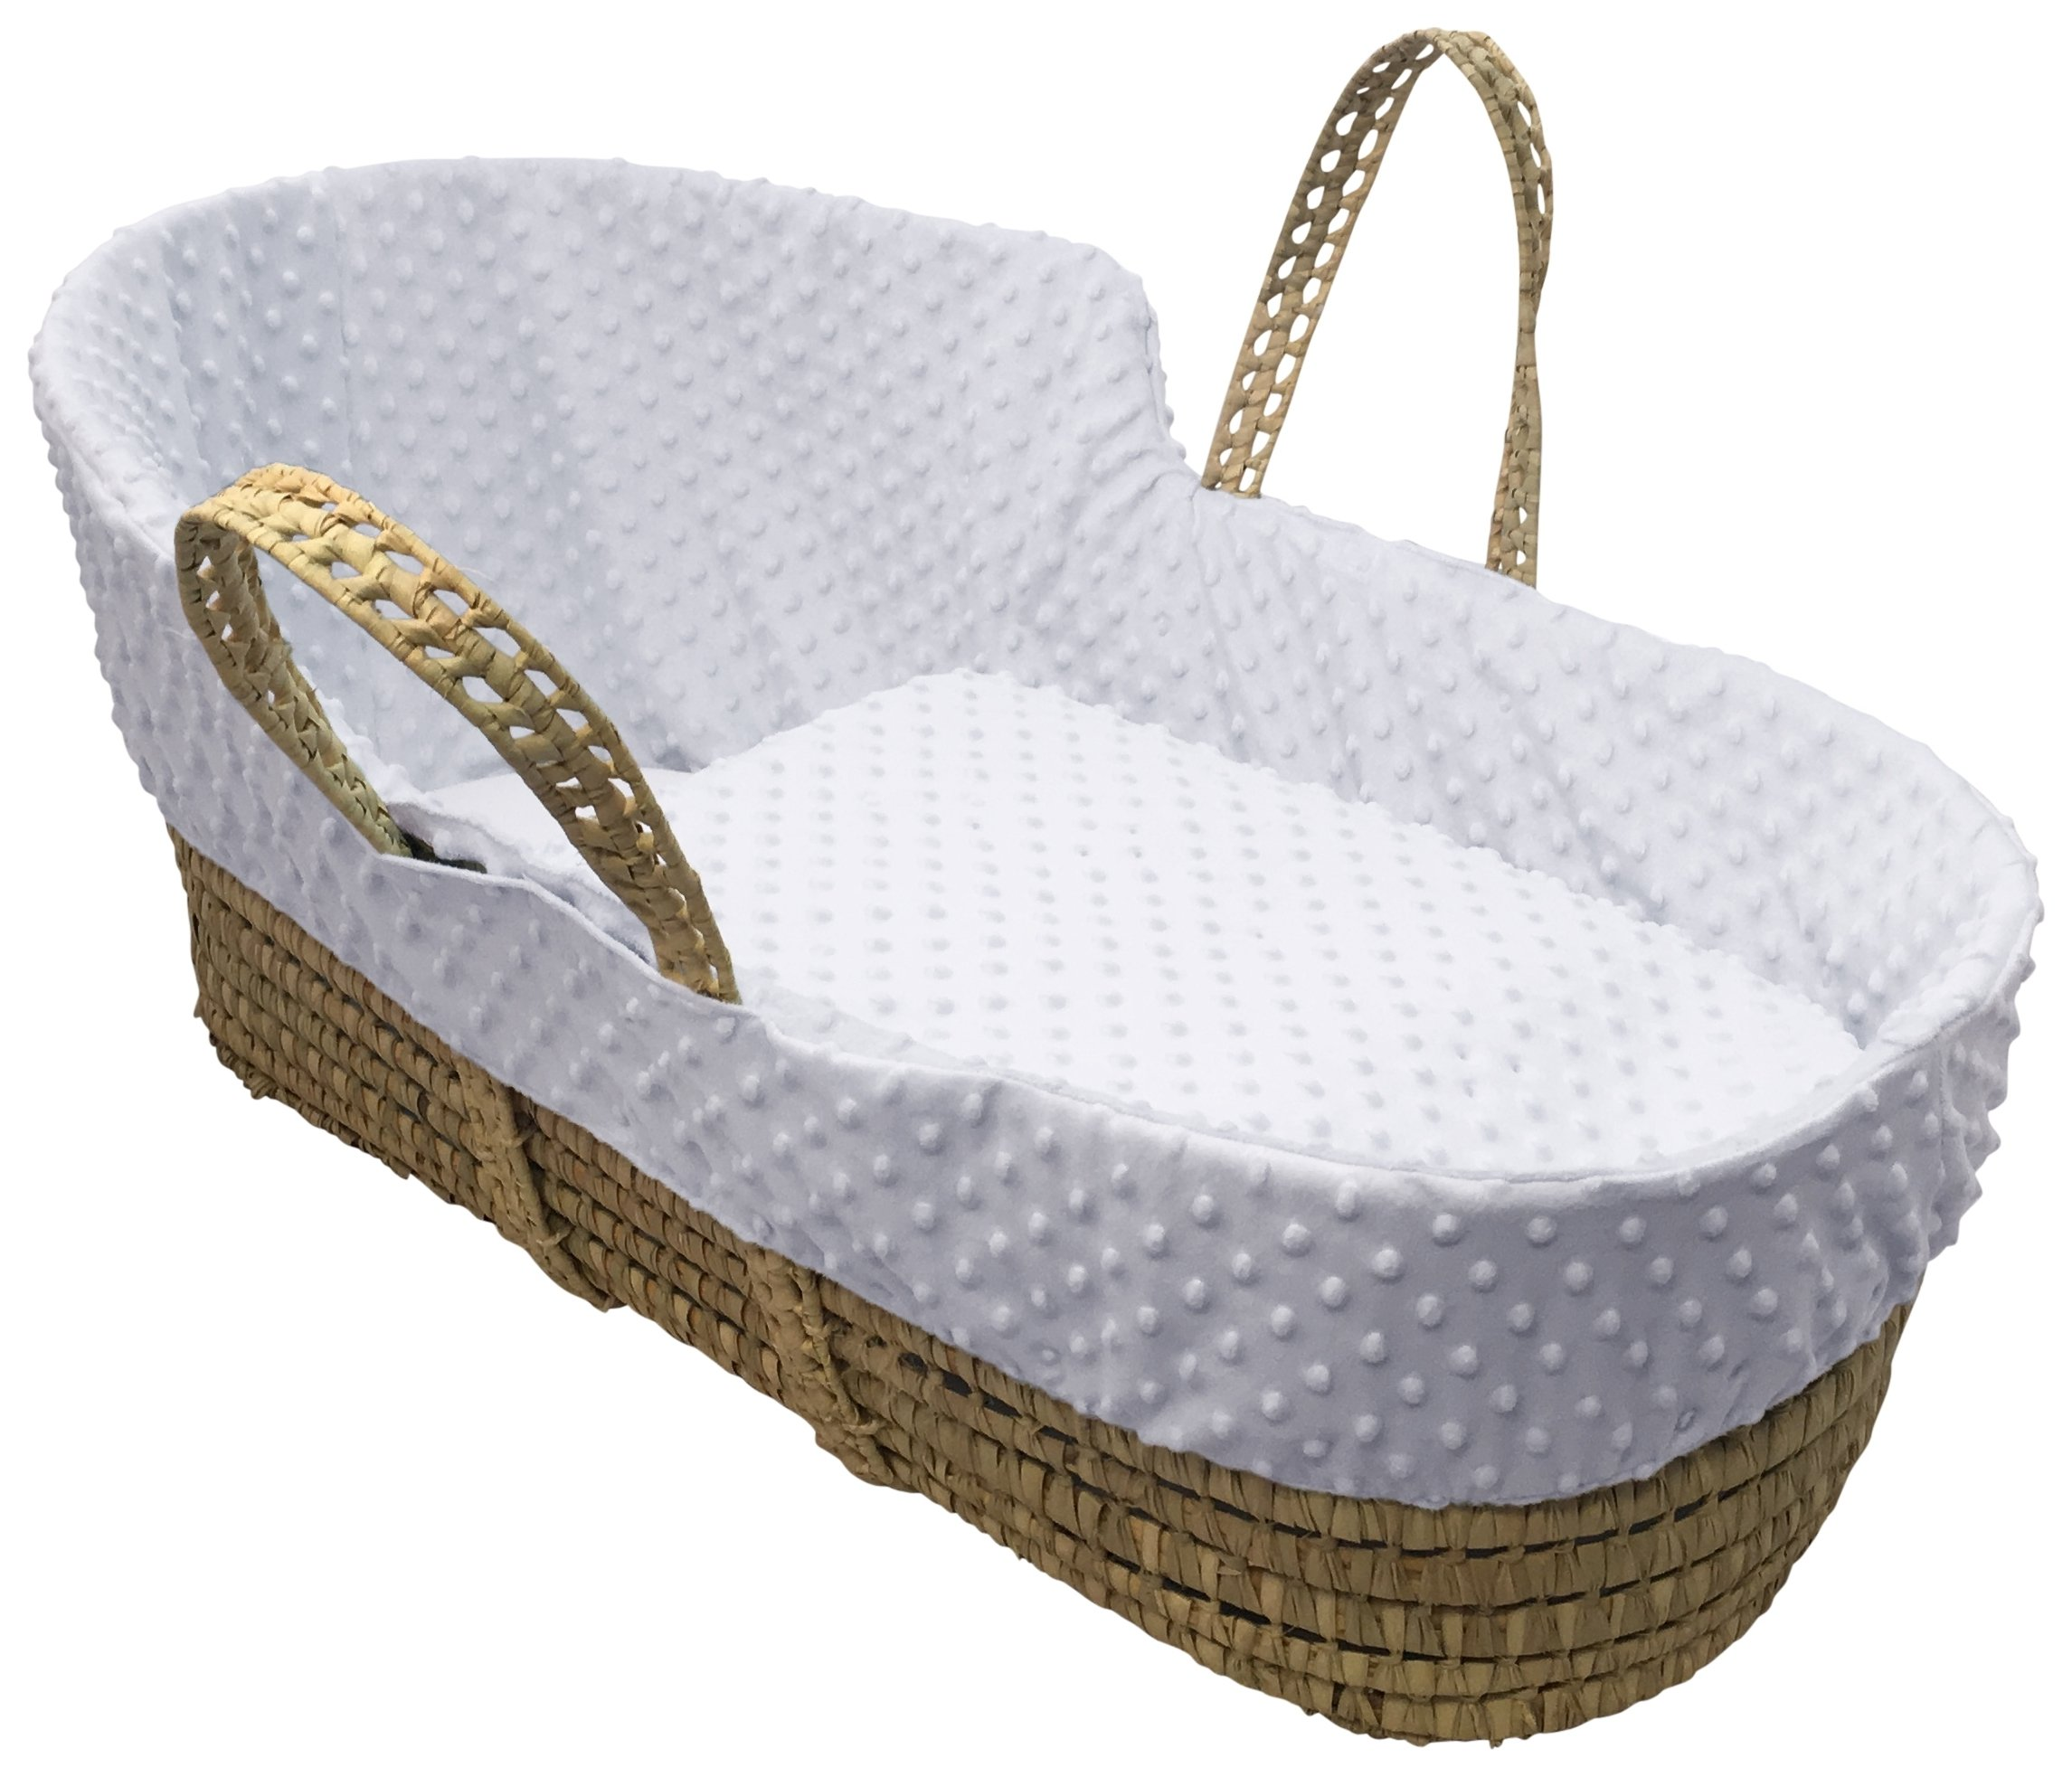 Clair de Lune White Dimple High Top Palm Moses Basket